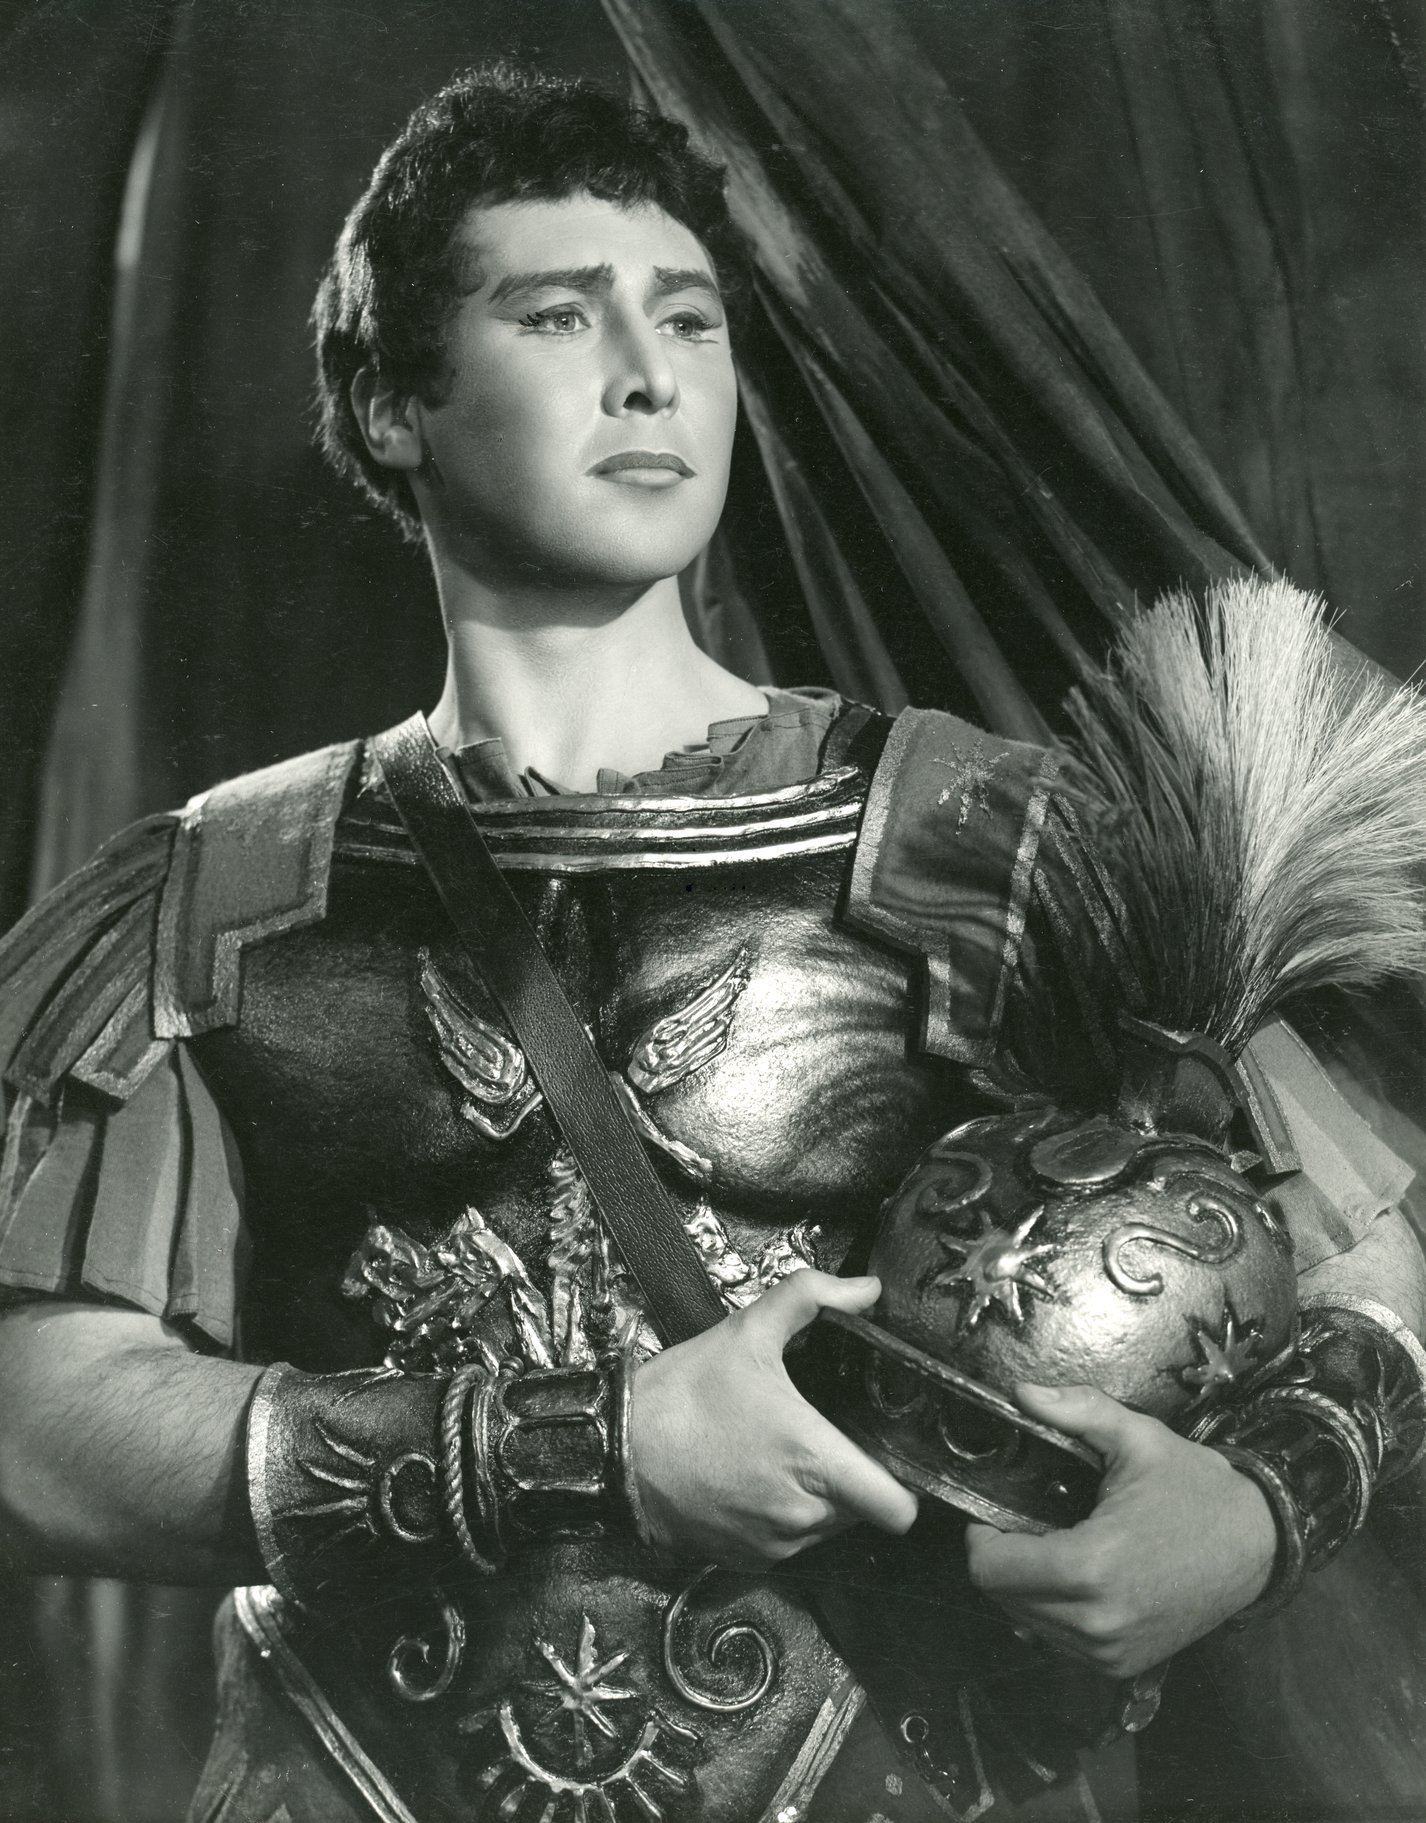 Mark Antony wearing roman armour, holding a helmet under his left arm